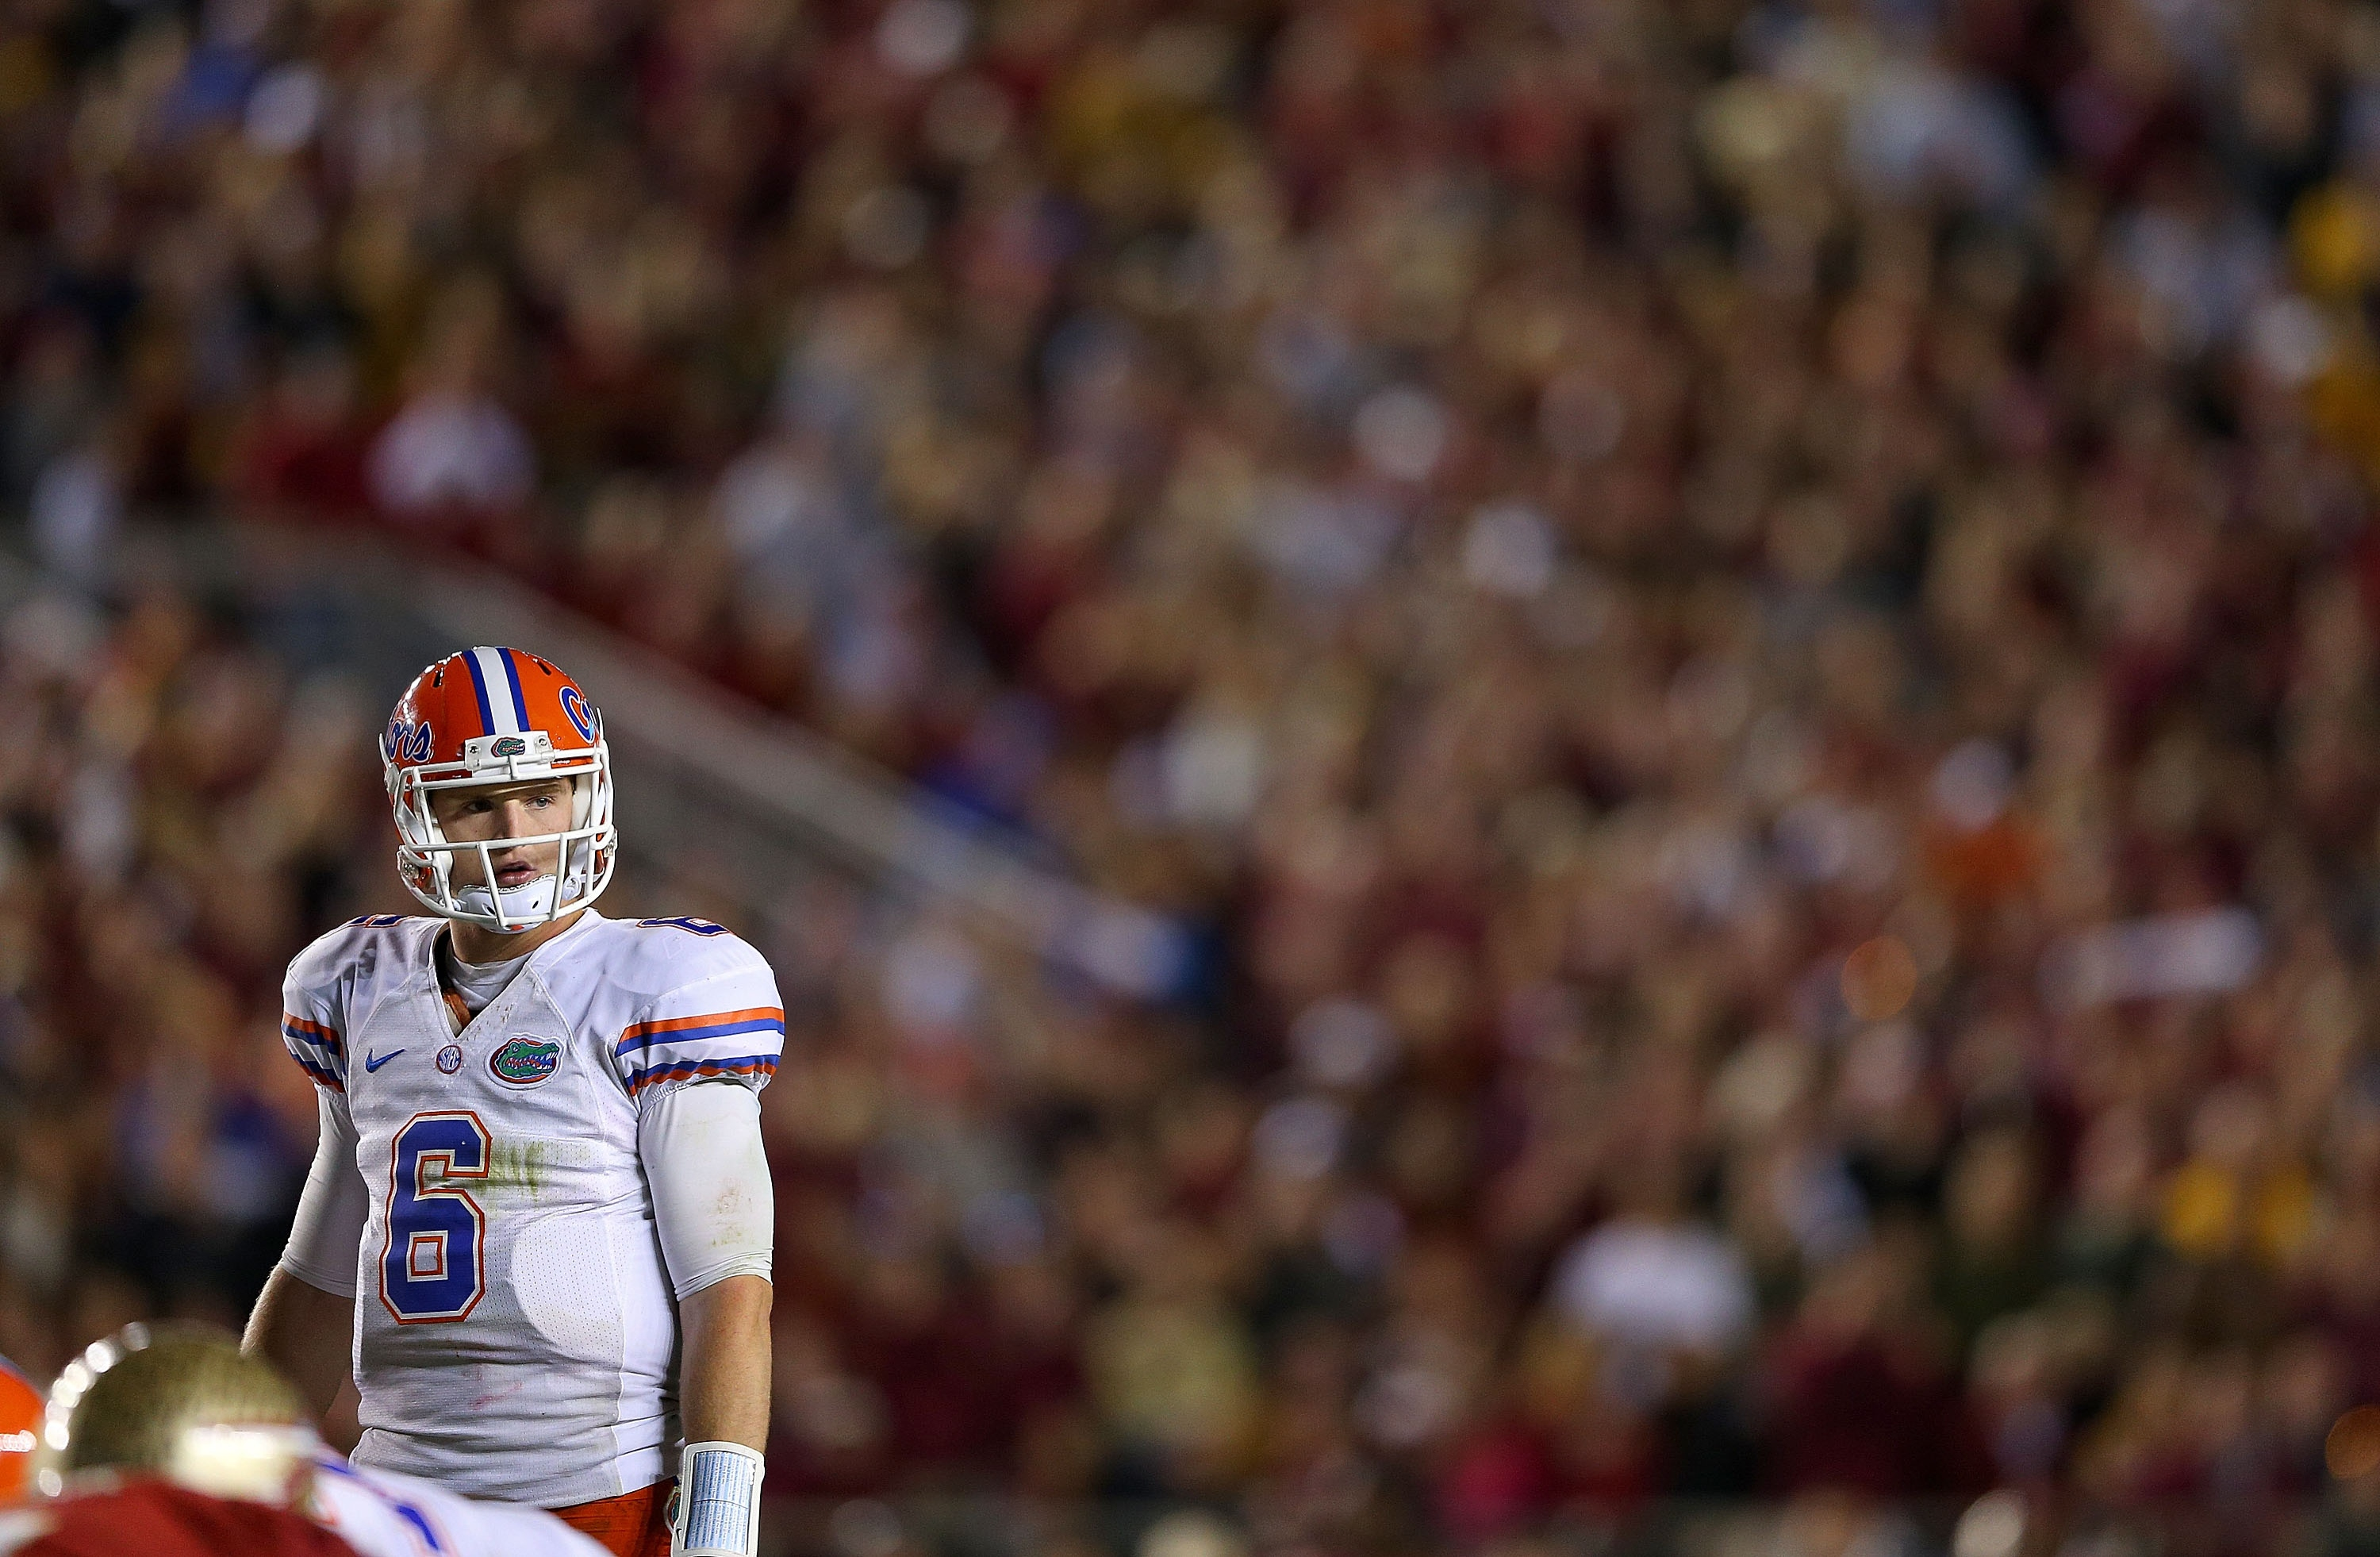 Jeff Driskel came into the season having thrown just 16 passes at Florida. (Getty Images)